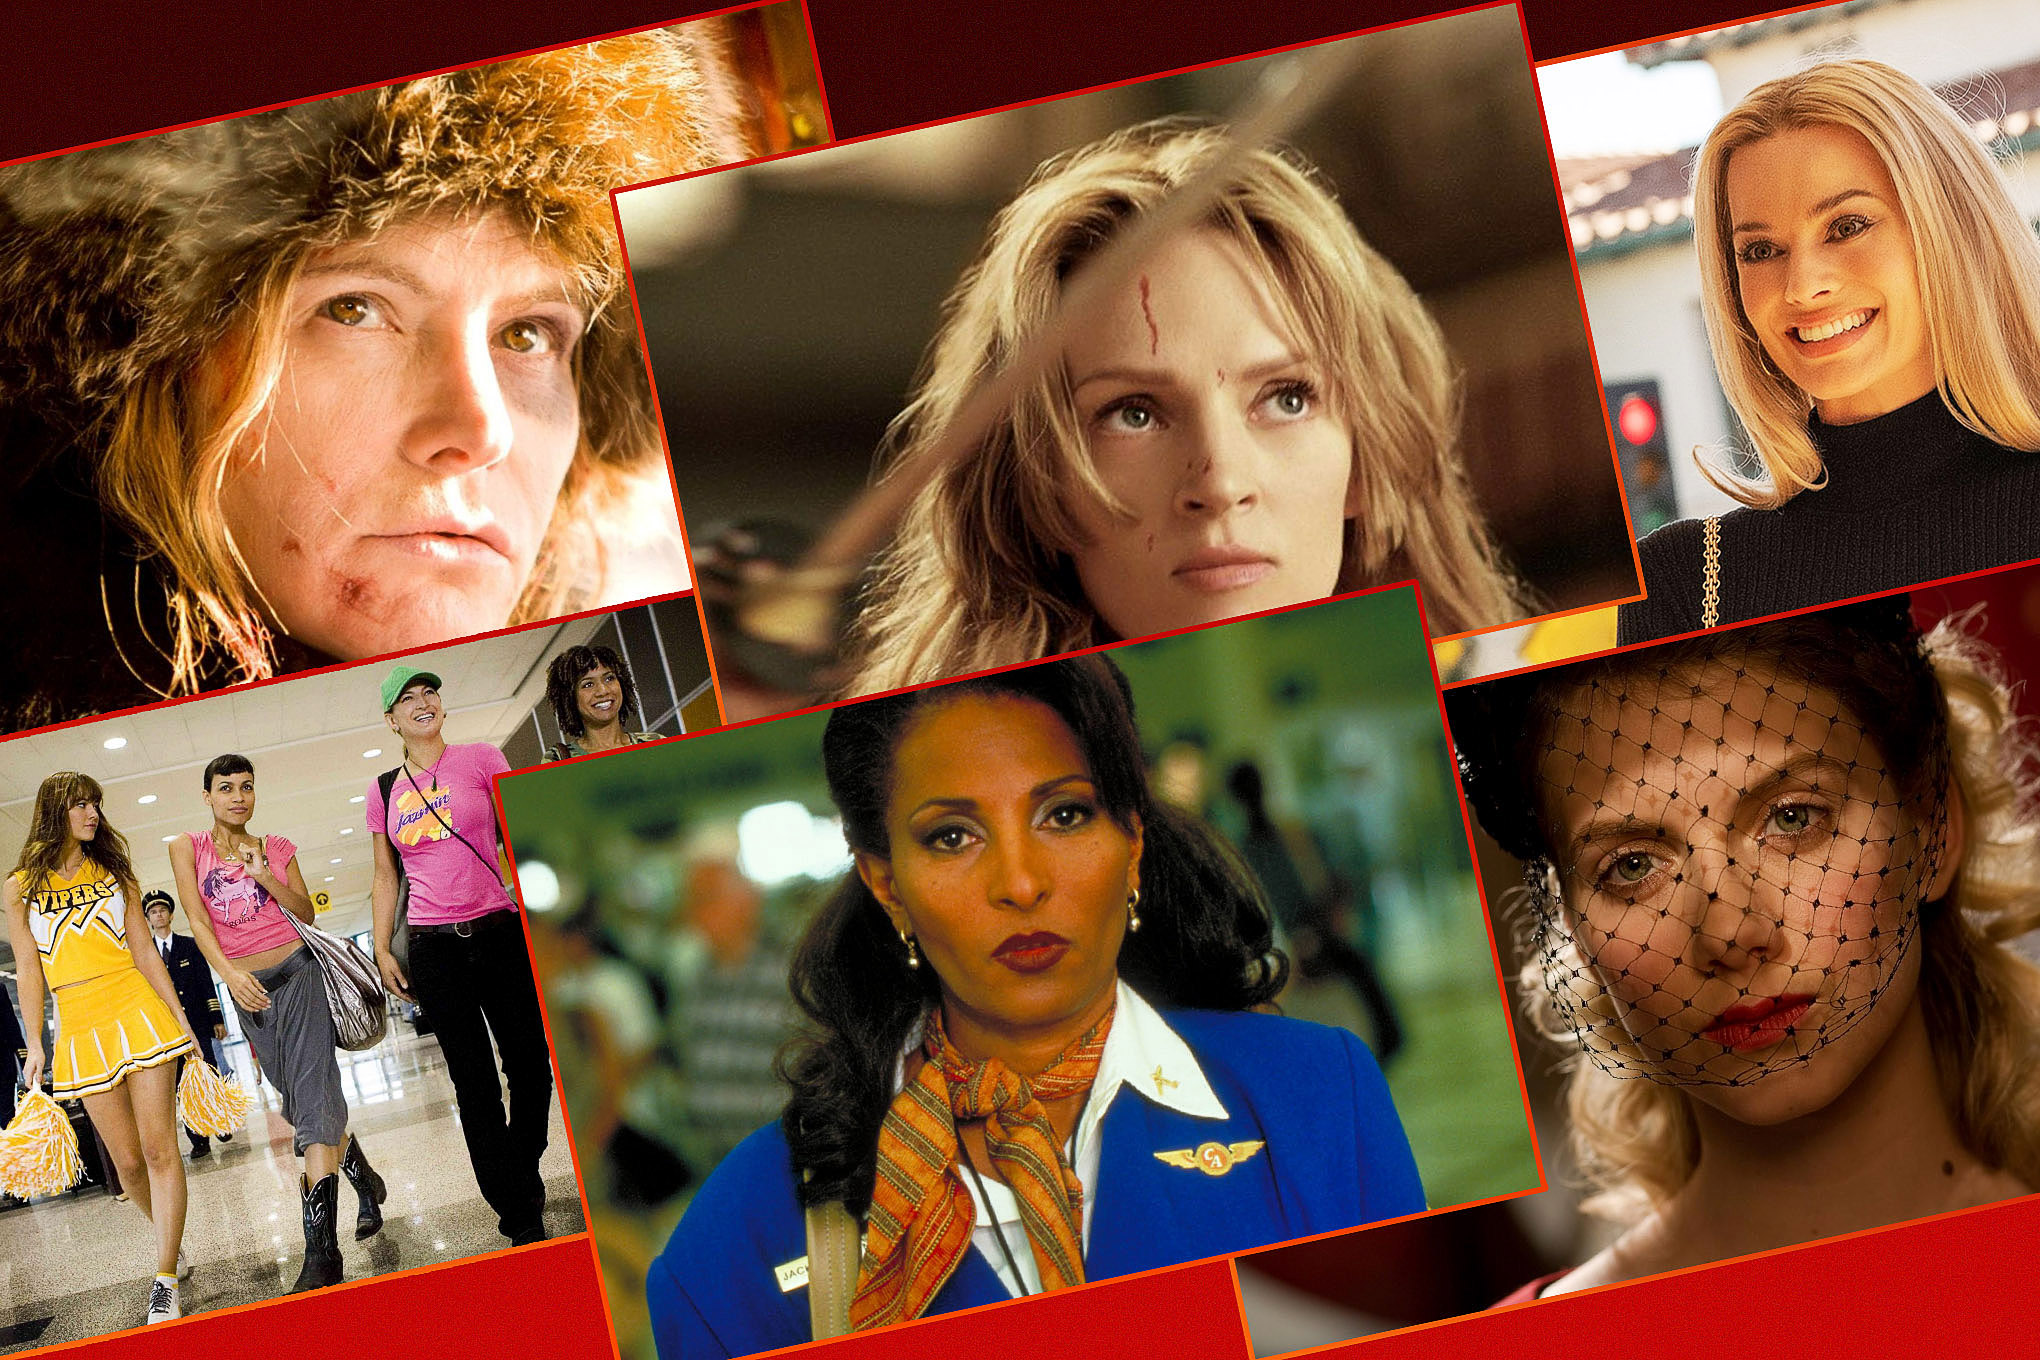 Six female characters from films directed by Quentin Tarantino